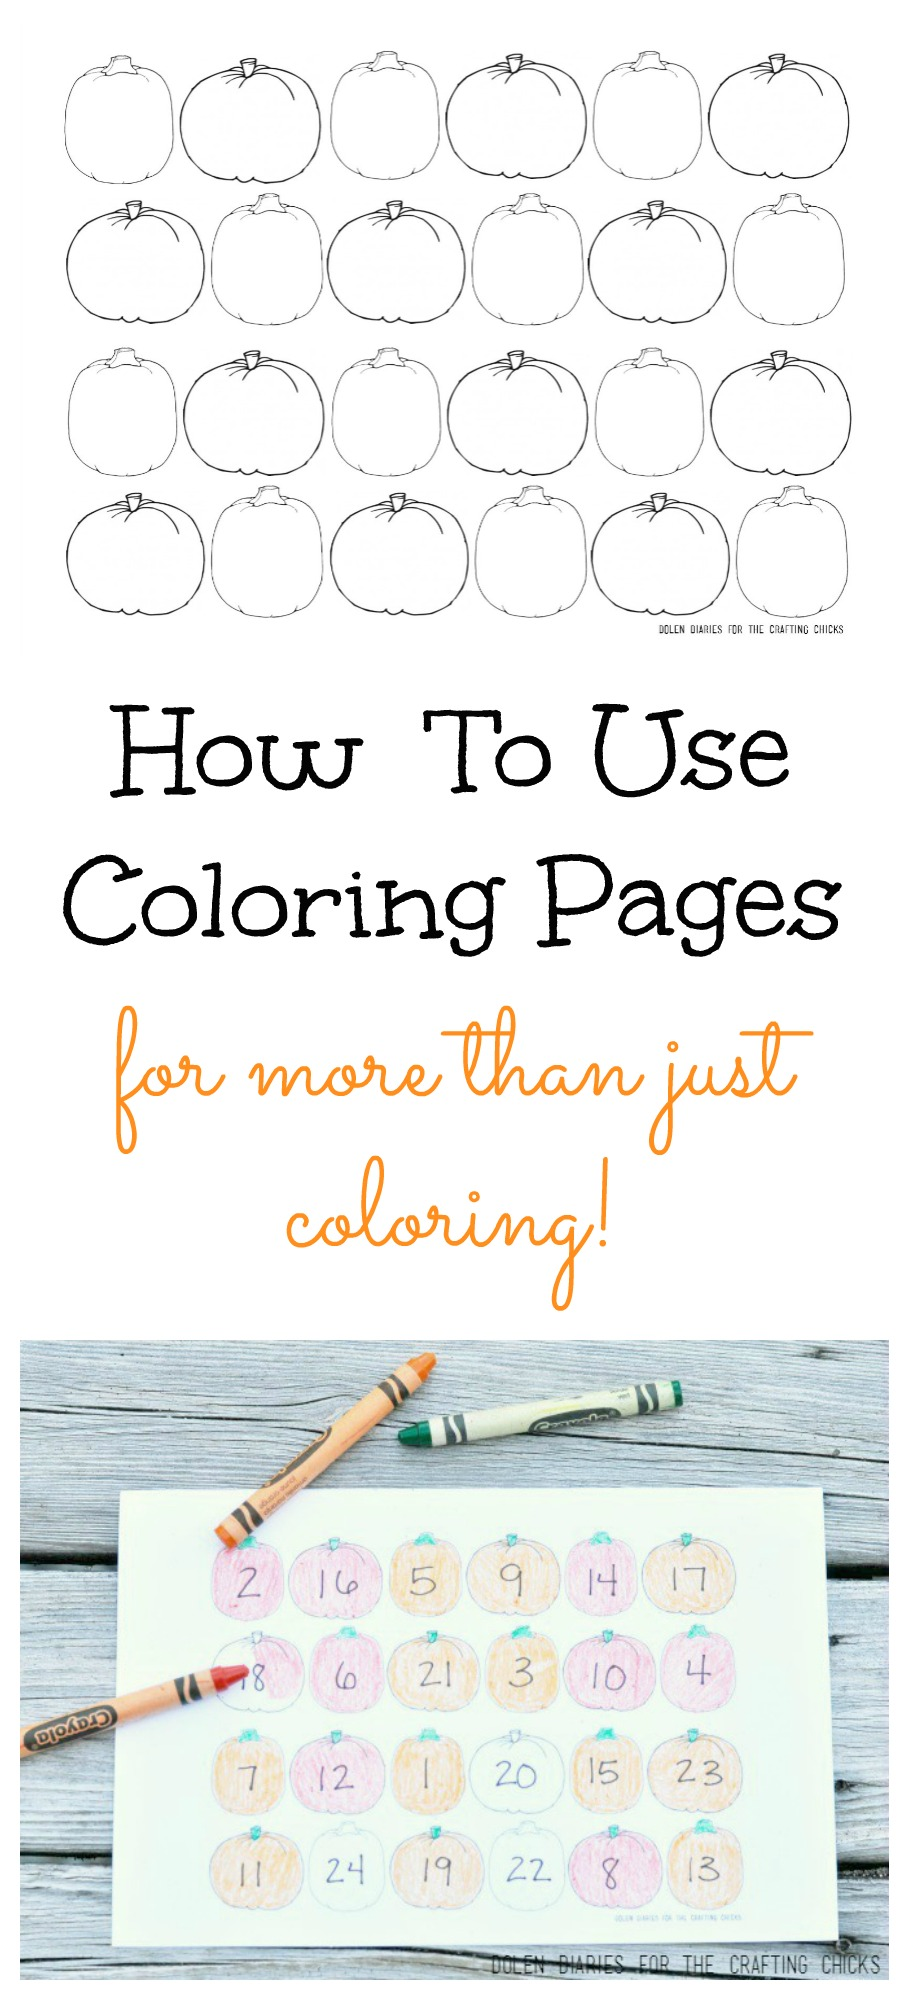 How To Use Coloring Pages For More Than Just Coloring